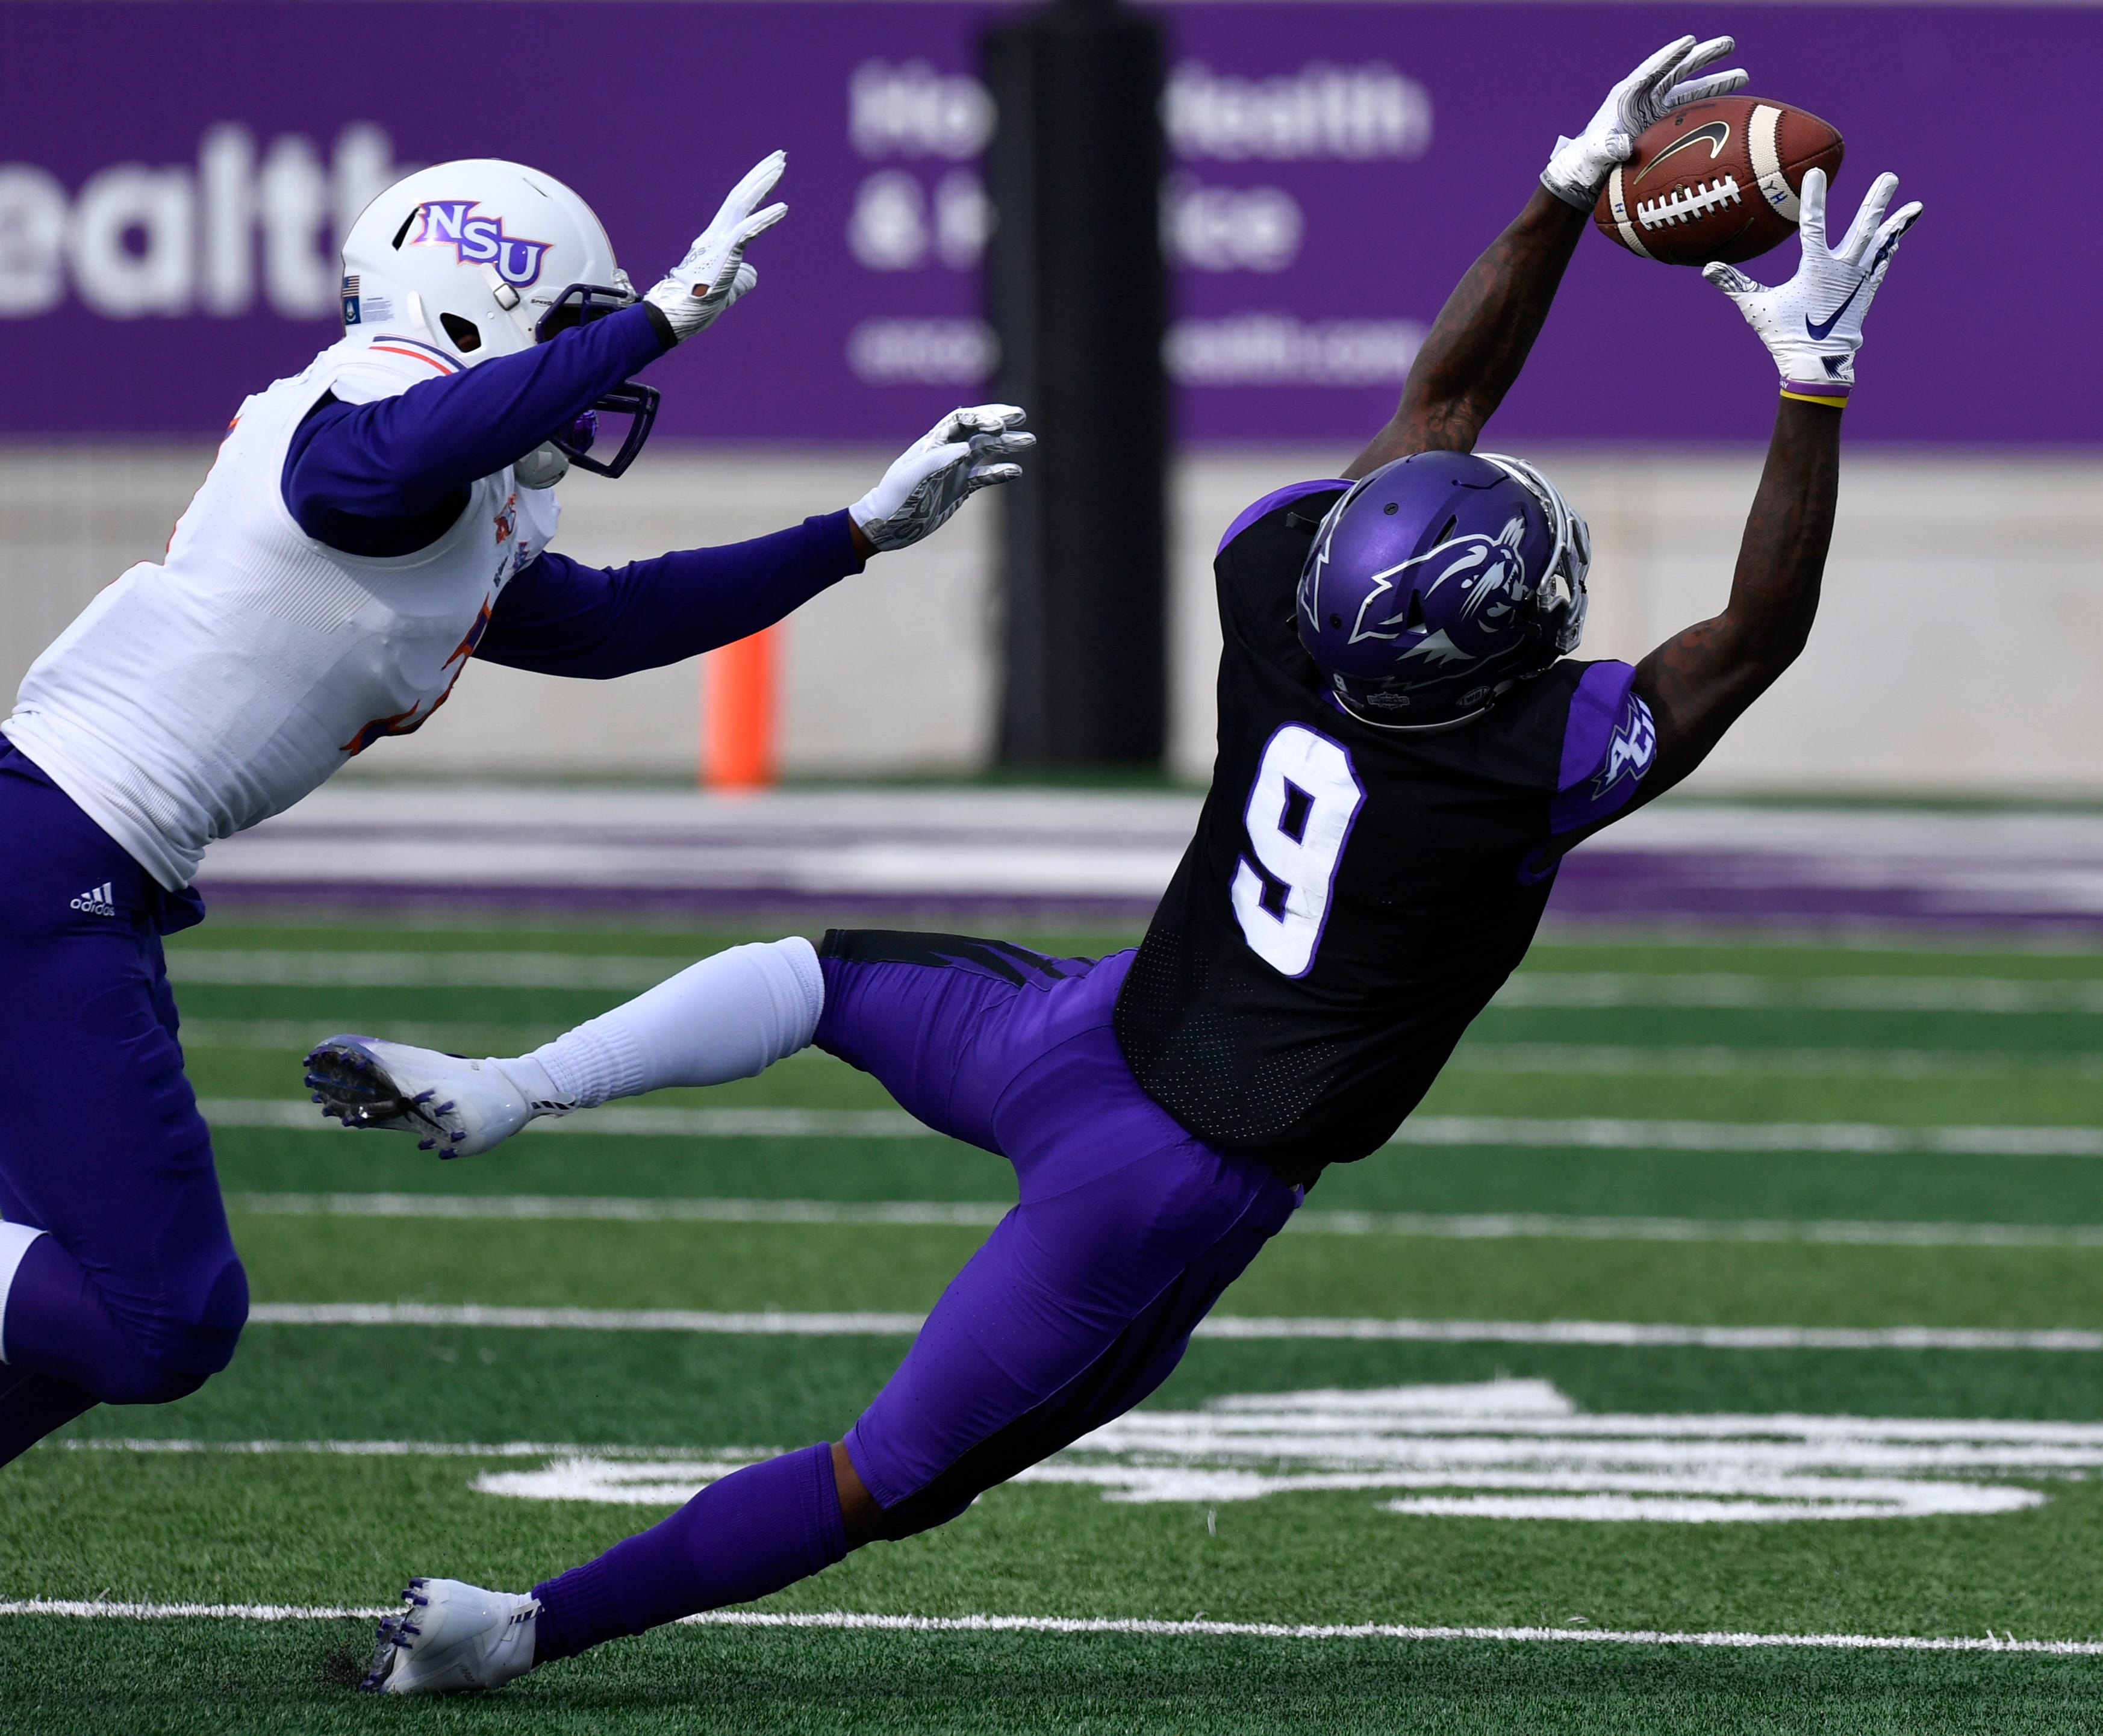 Wildcats wide receiver Kalin Sadler completes a pass during Saturday's game against Northwestern State University Nov. 3, 2018. Final score was 49-47, Abilene Christian University.